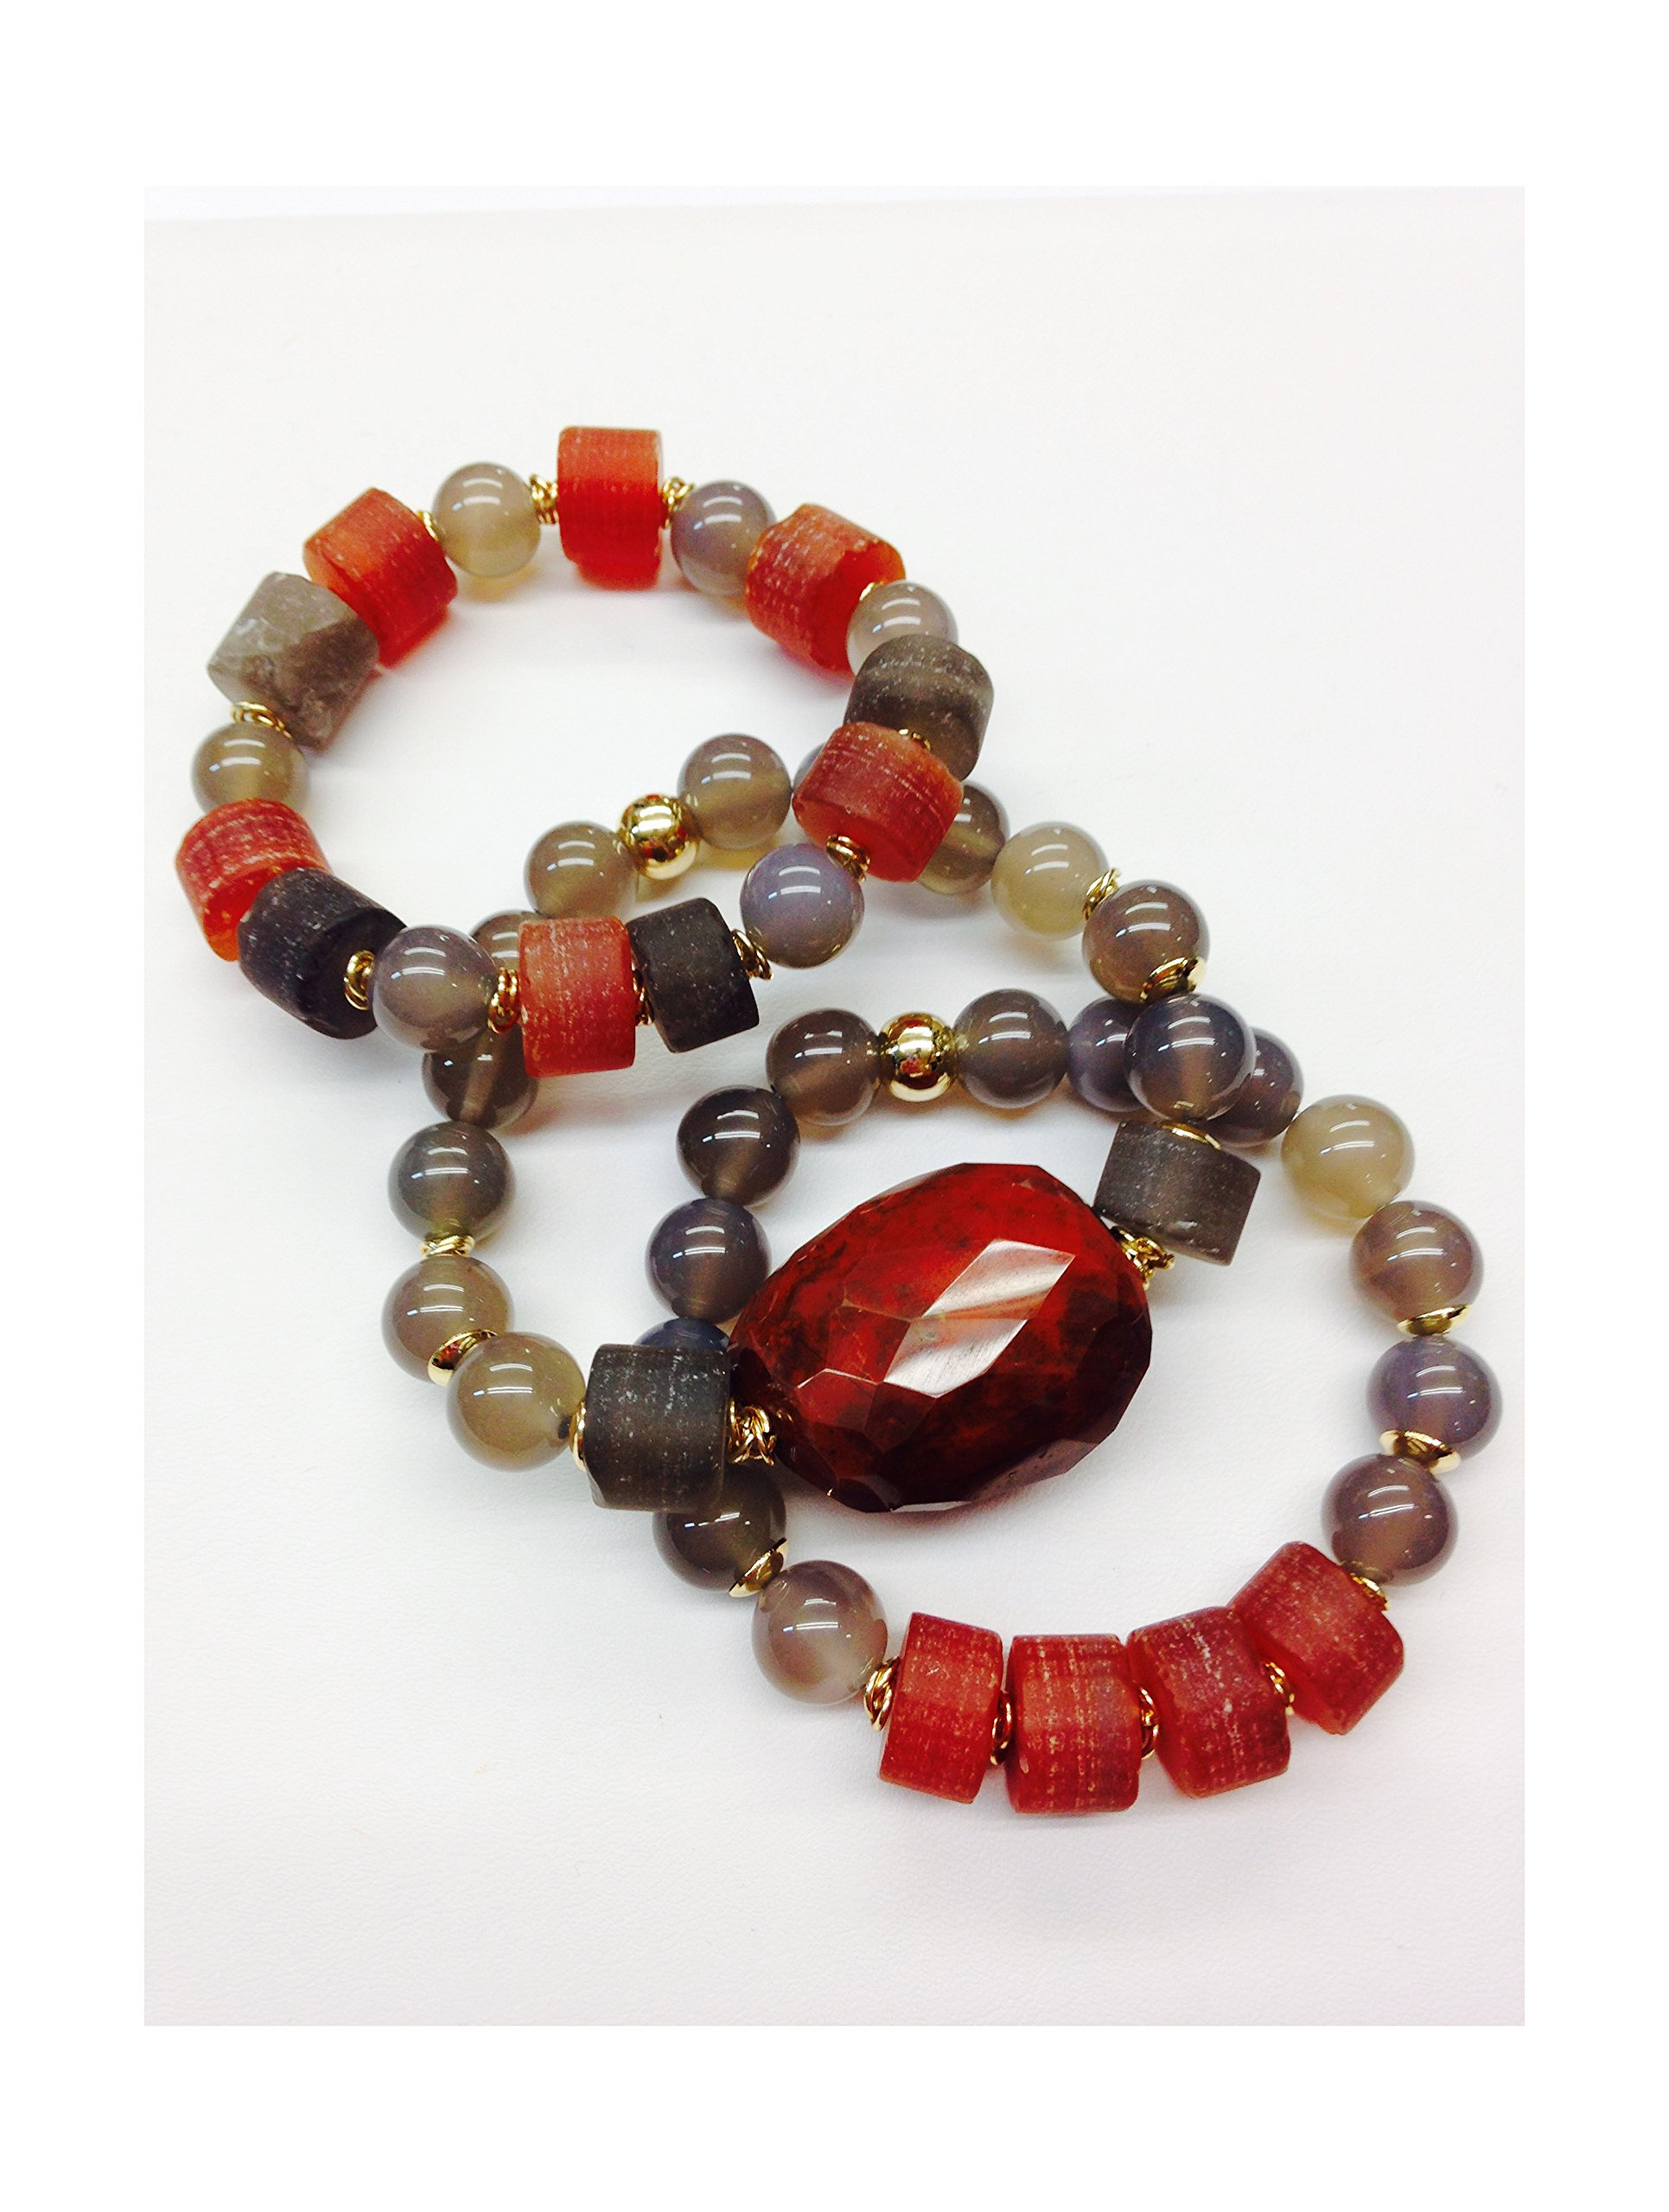 Set of 3 Handmade Bracelets - Grey Agate, Smoke Quartz, Exotic Rustic Agate & Terracotta Jasper Natural Stones & Goldfilled Beads by Formula Moda